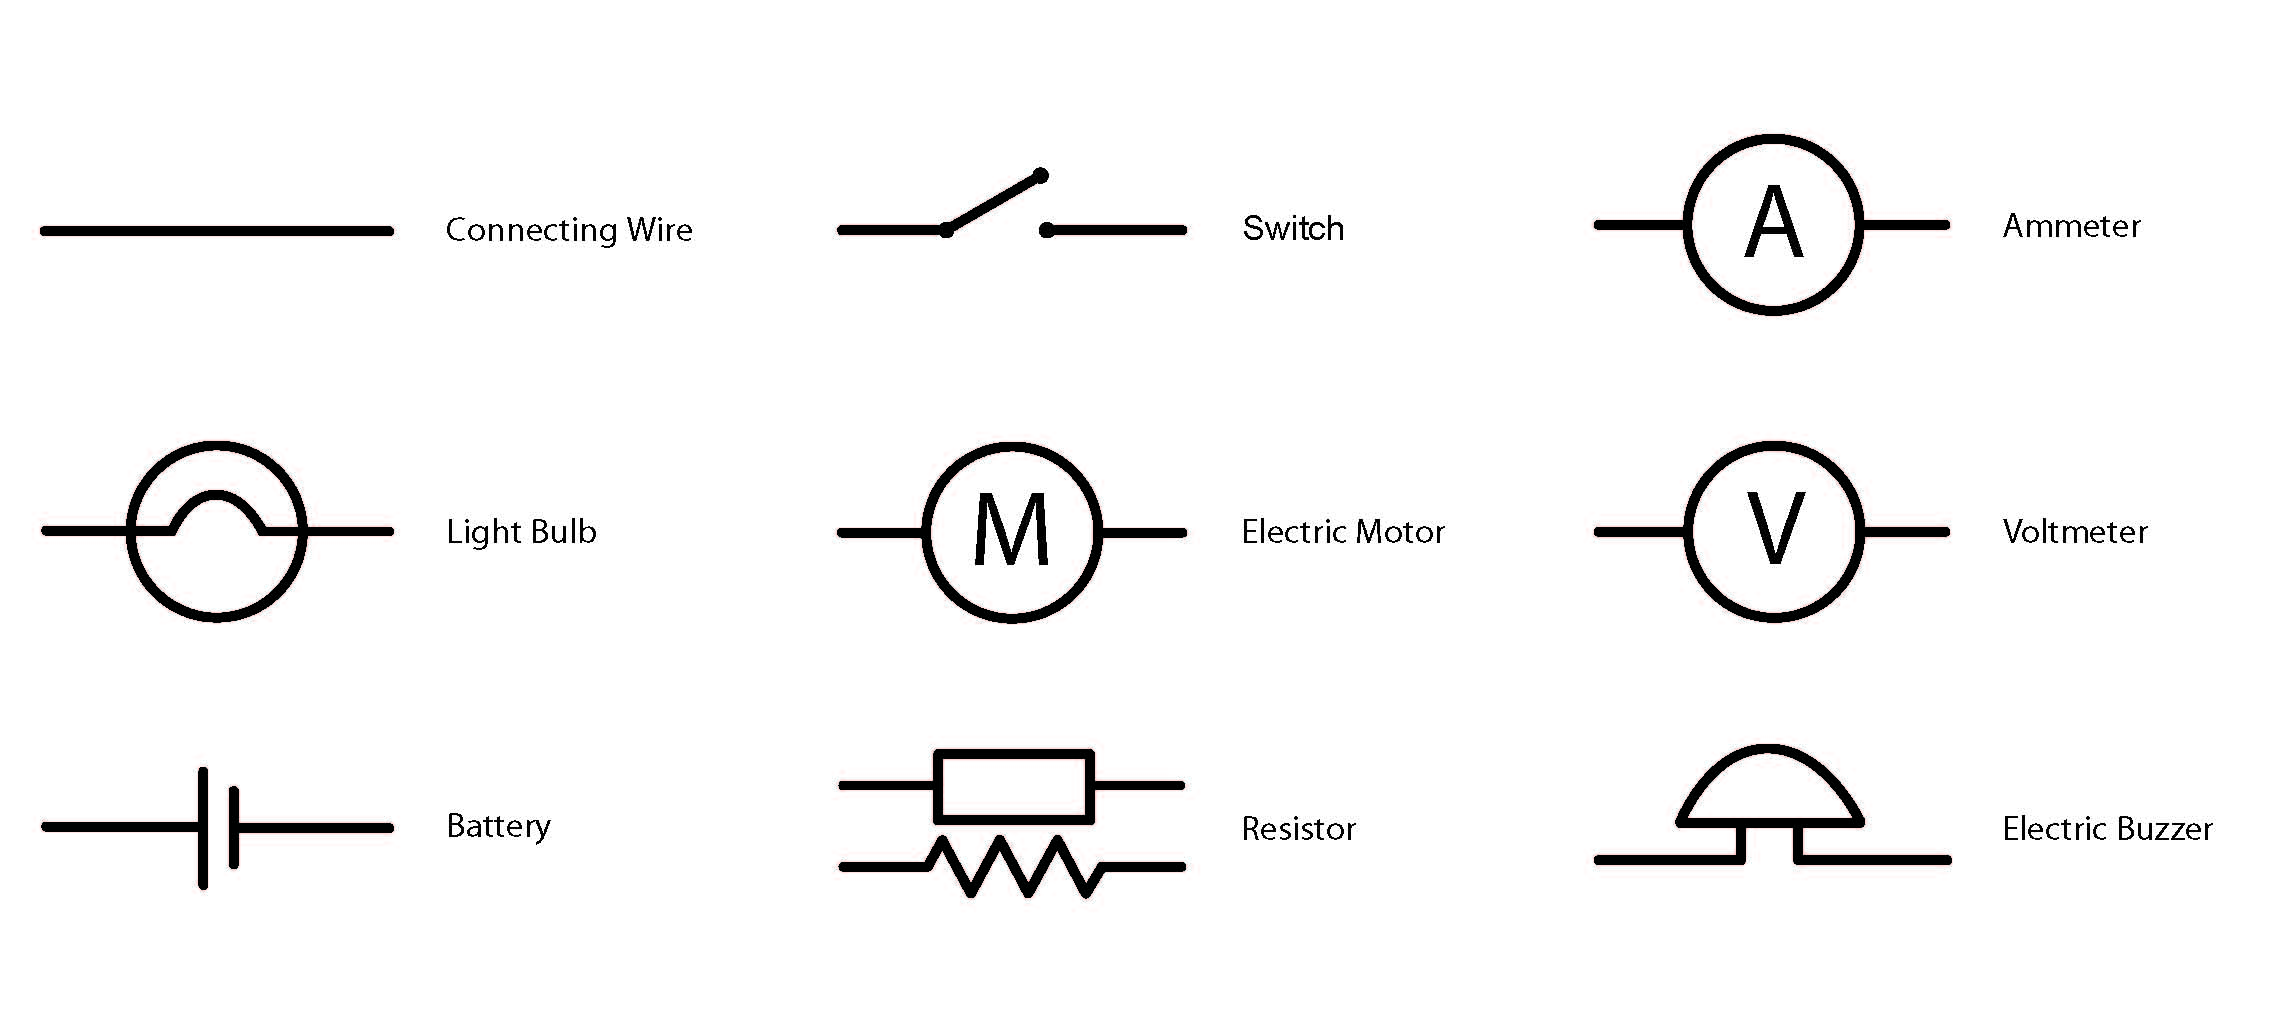 Dc Circuit Breaker Diagram Electrical Wiring 4 Pole Circuits Symbols Horizon Power Internal